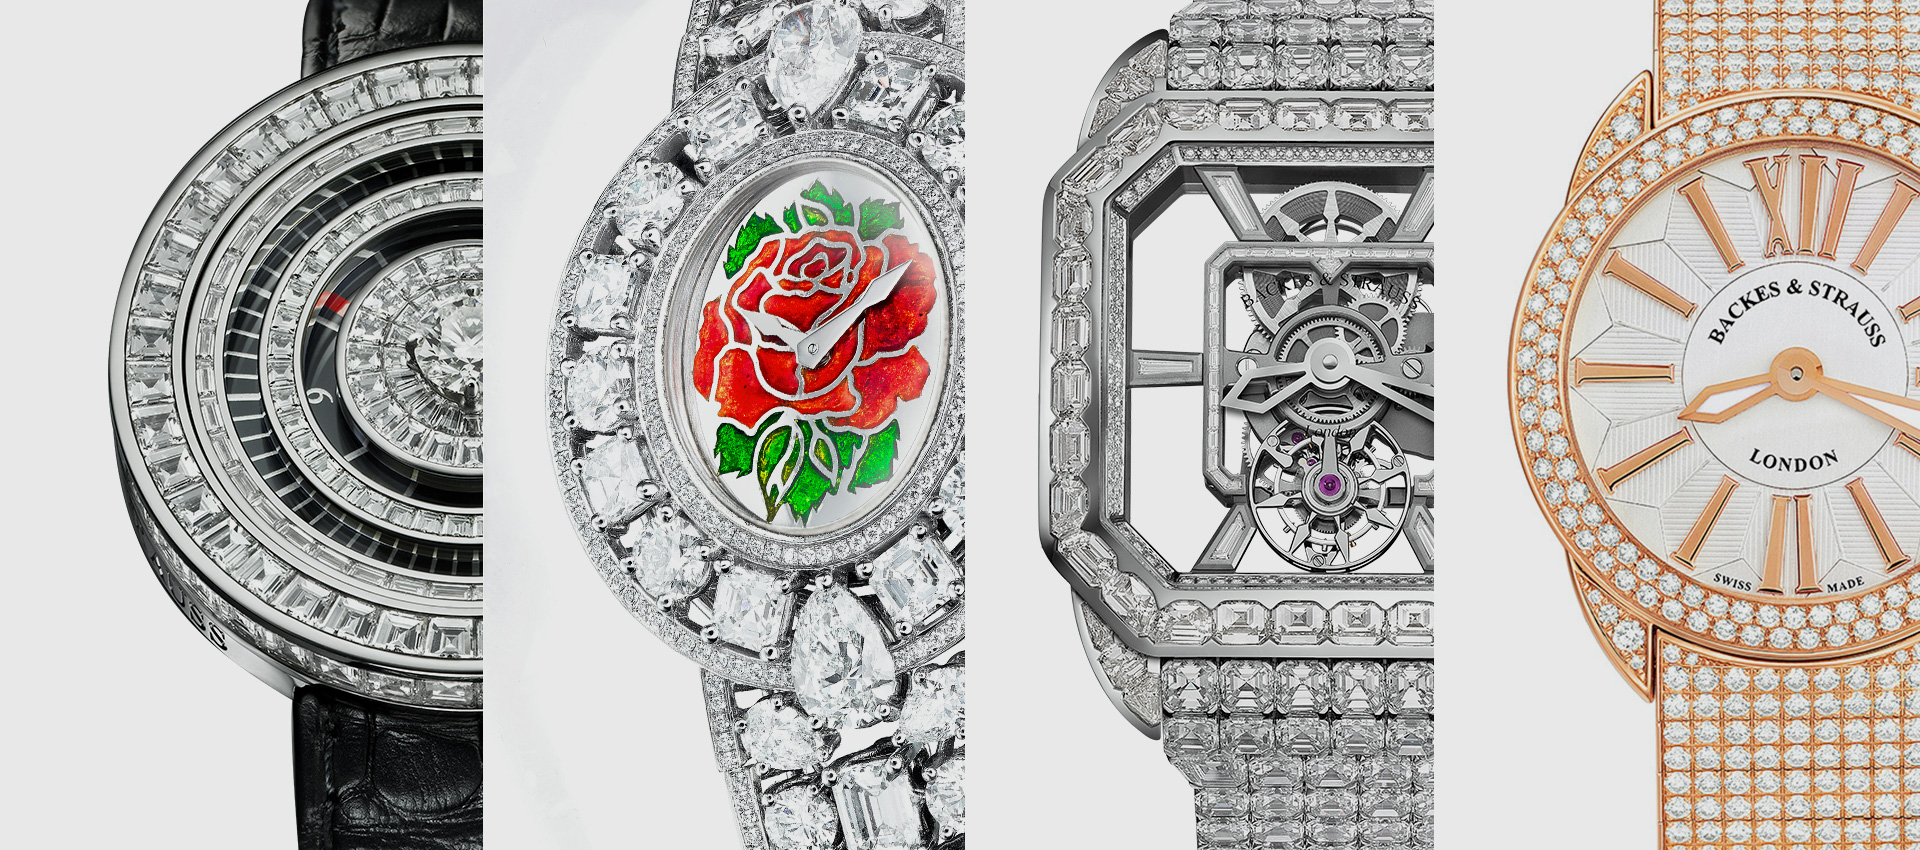 Backes & Strauss diamond bespoke watches for ladies and men